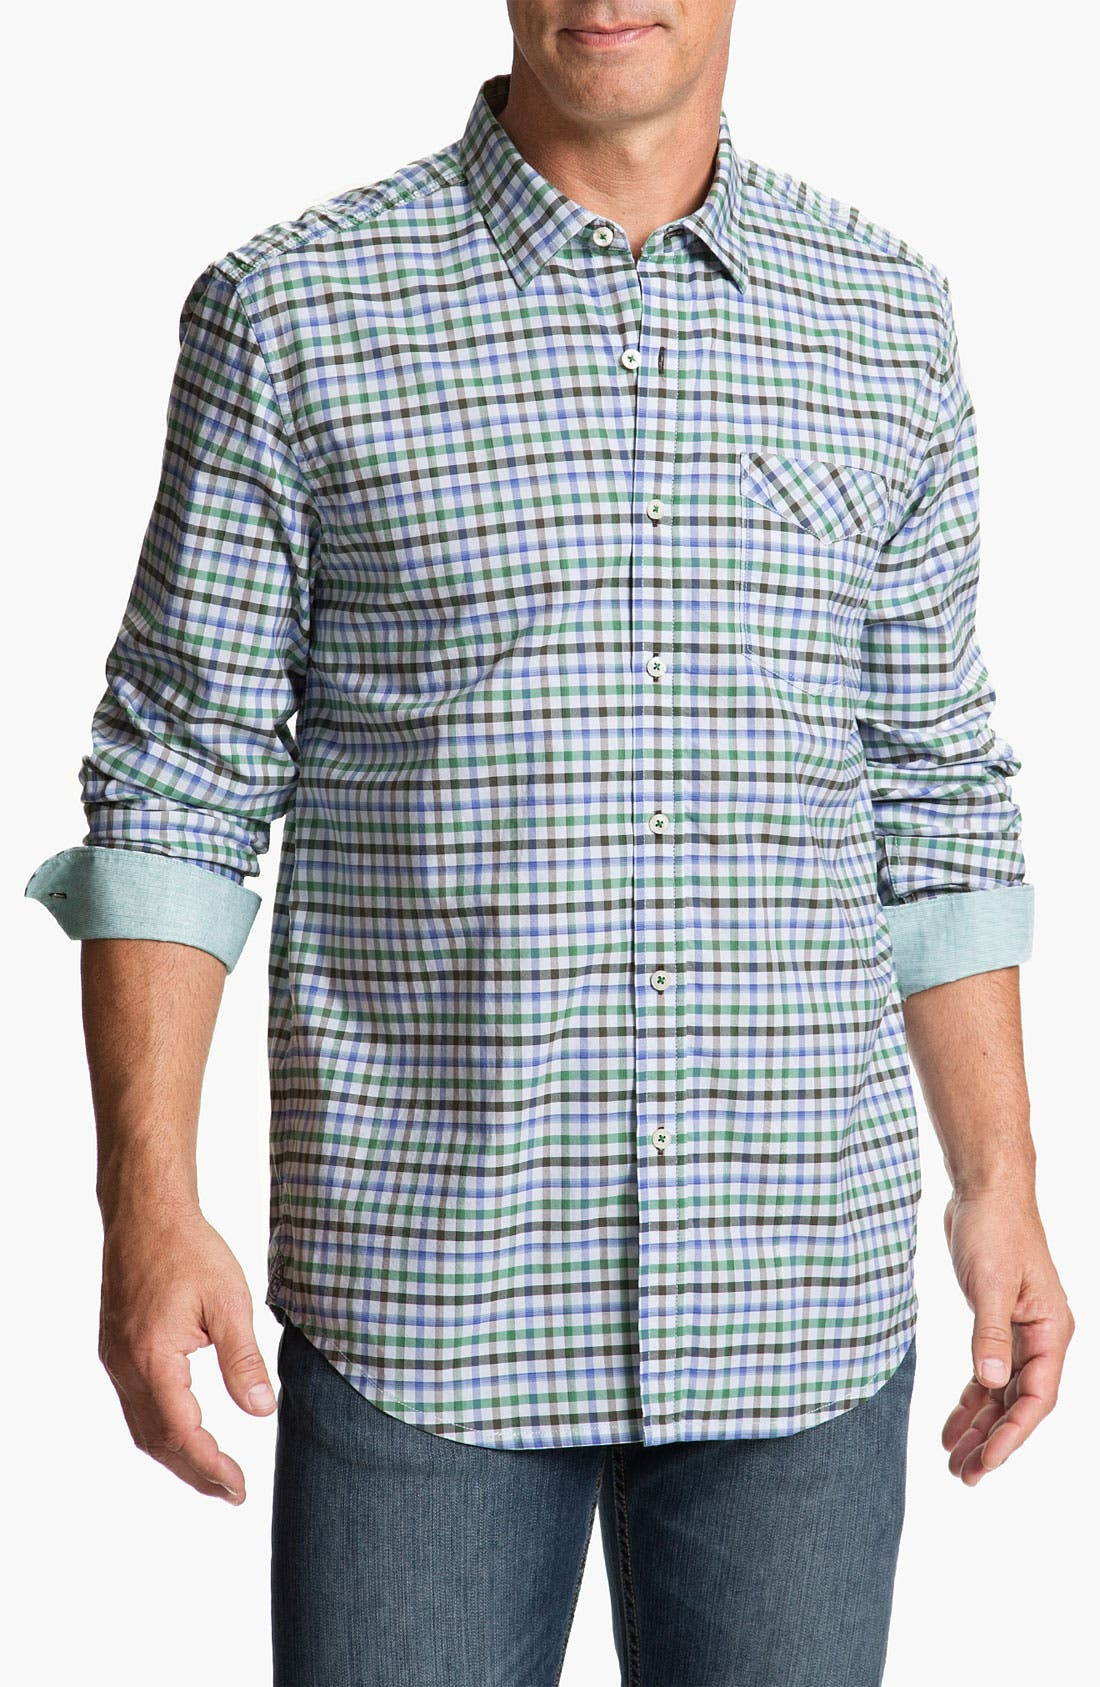 Alternate Image 1 Selected - Tommy Bahama Denim 'Dai-Nam-Ic Plaid' Sport Shirt